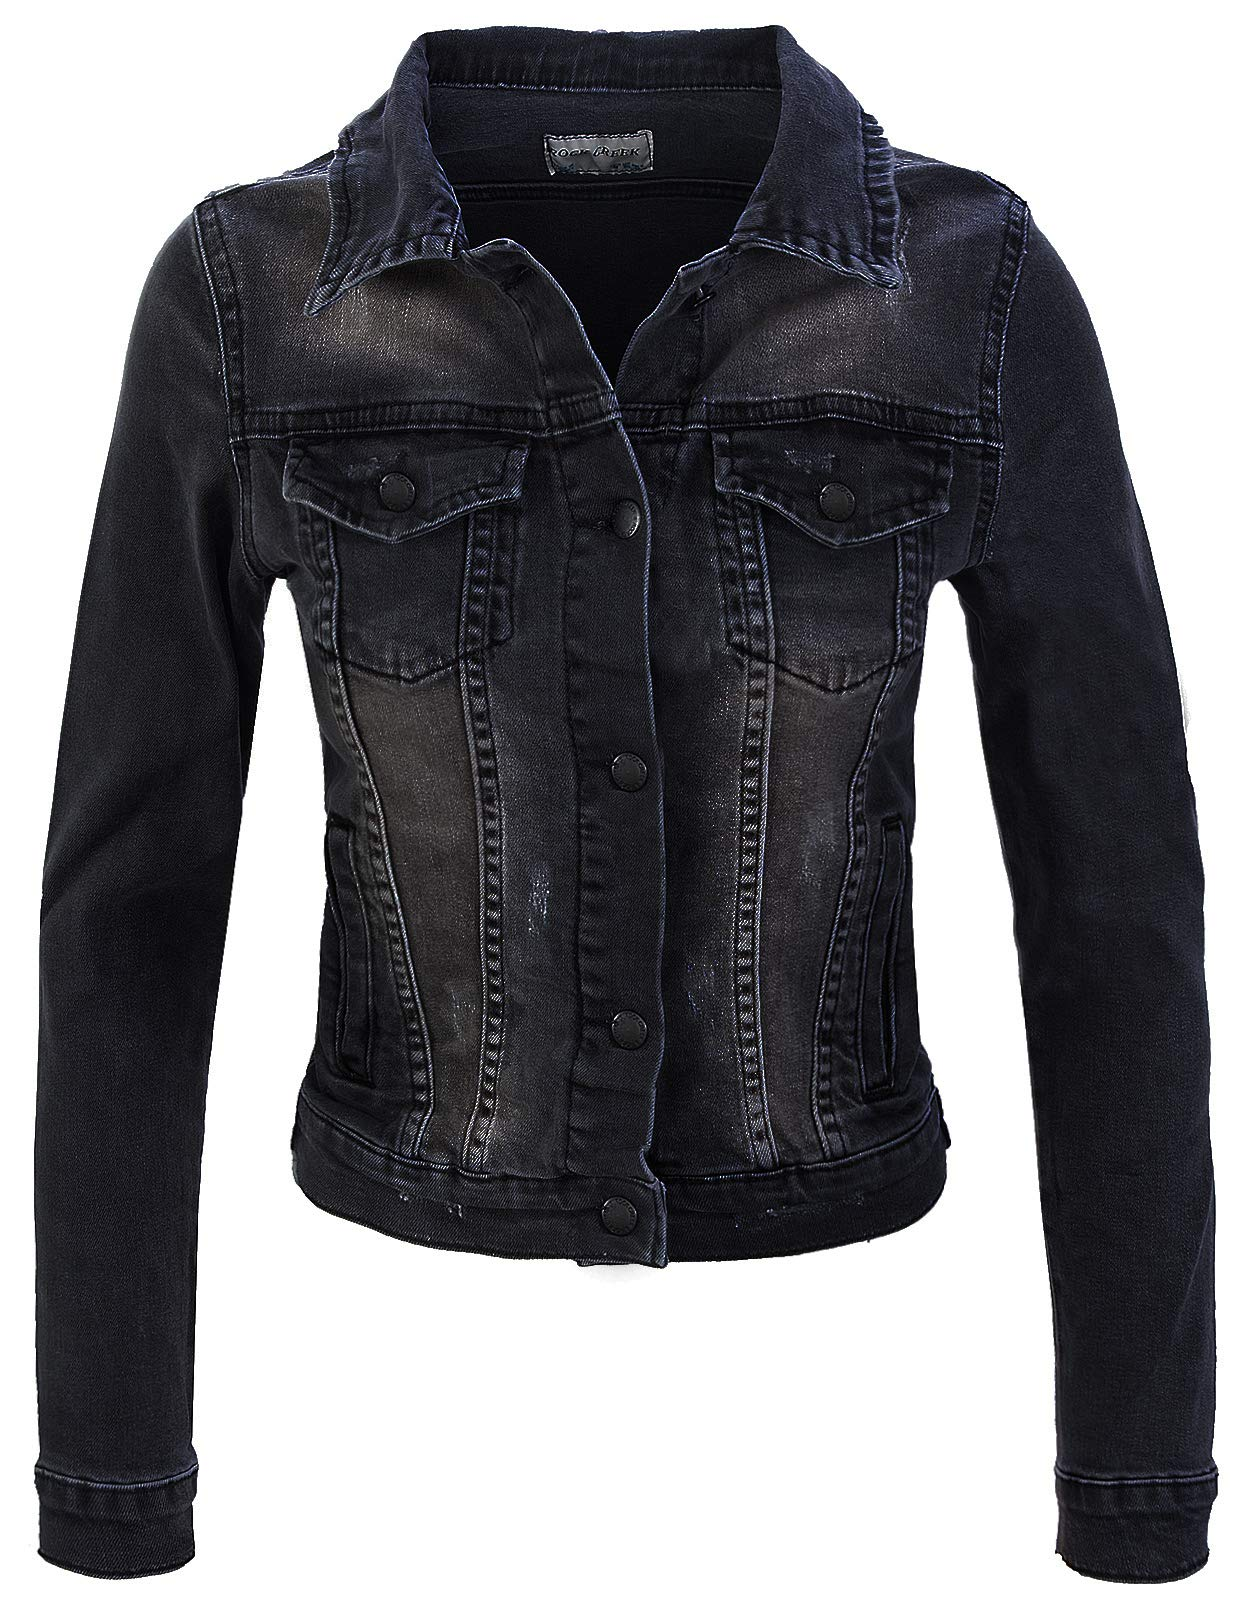 ROCK CREEK DAMEN JEANSJACKE D-401